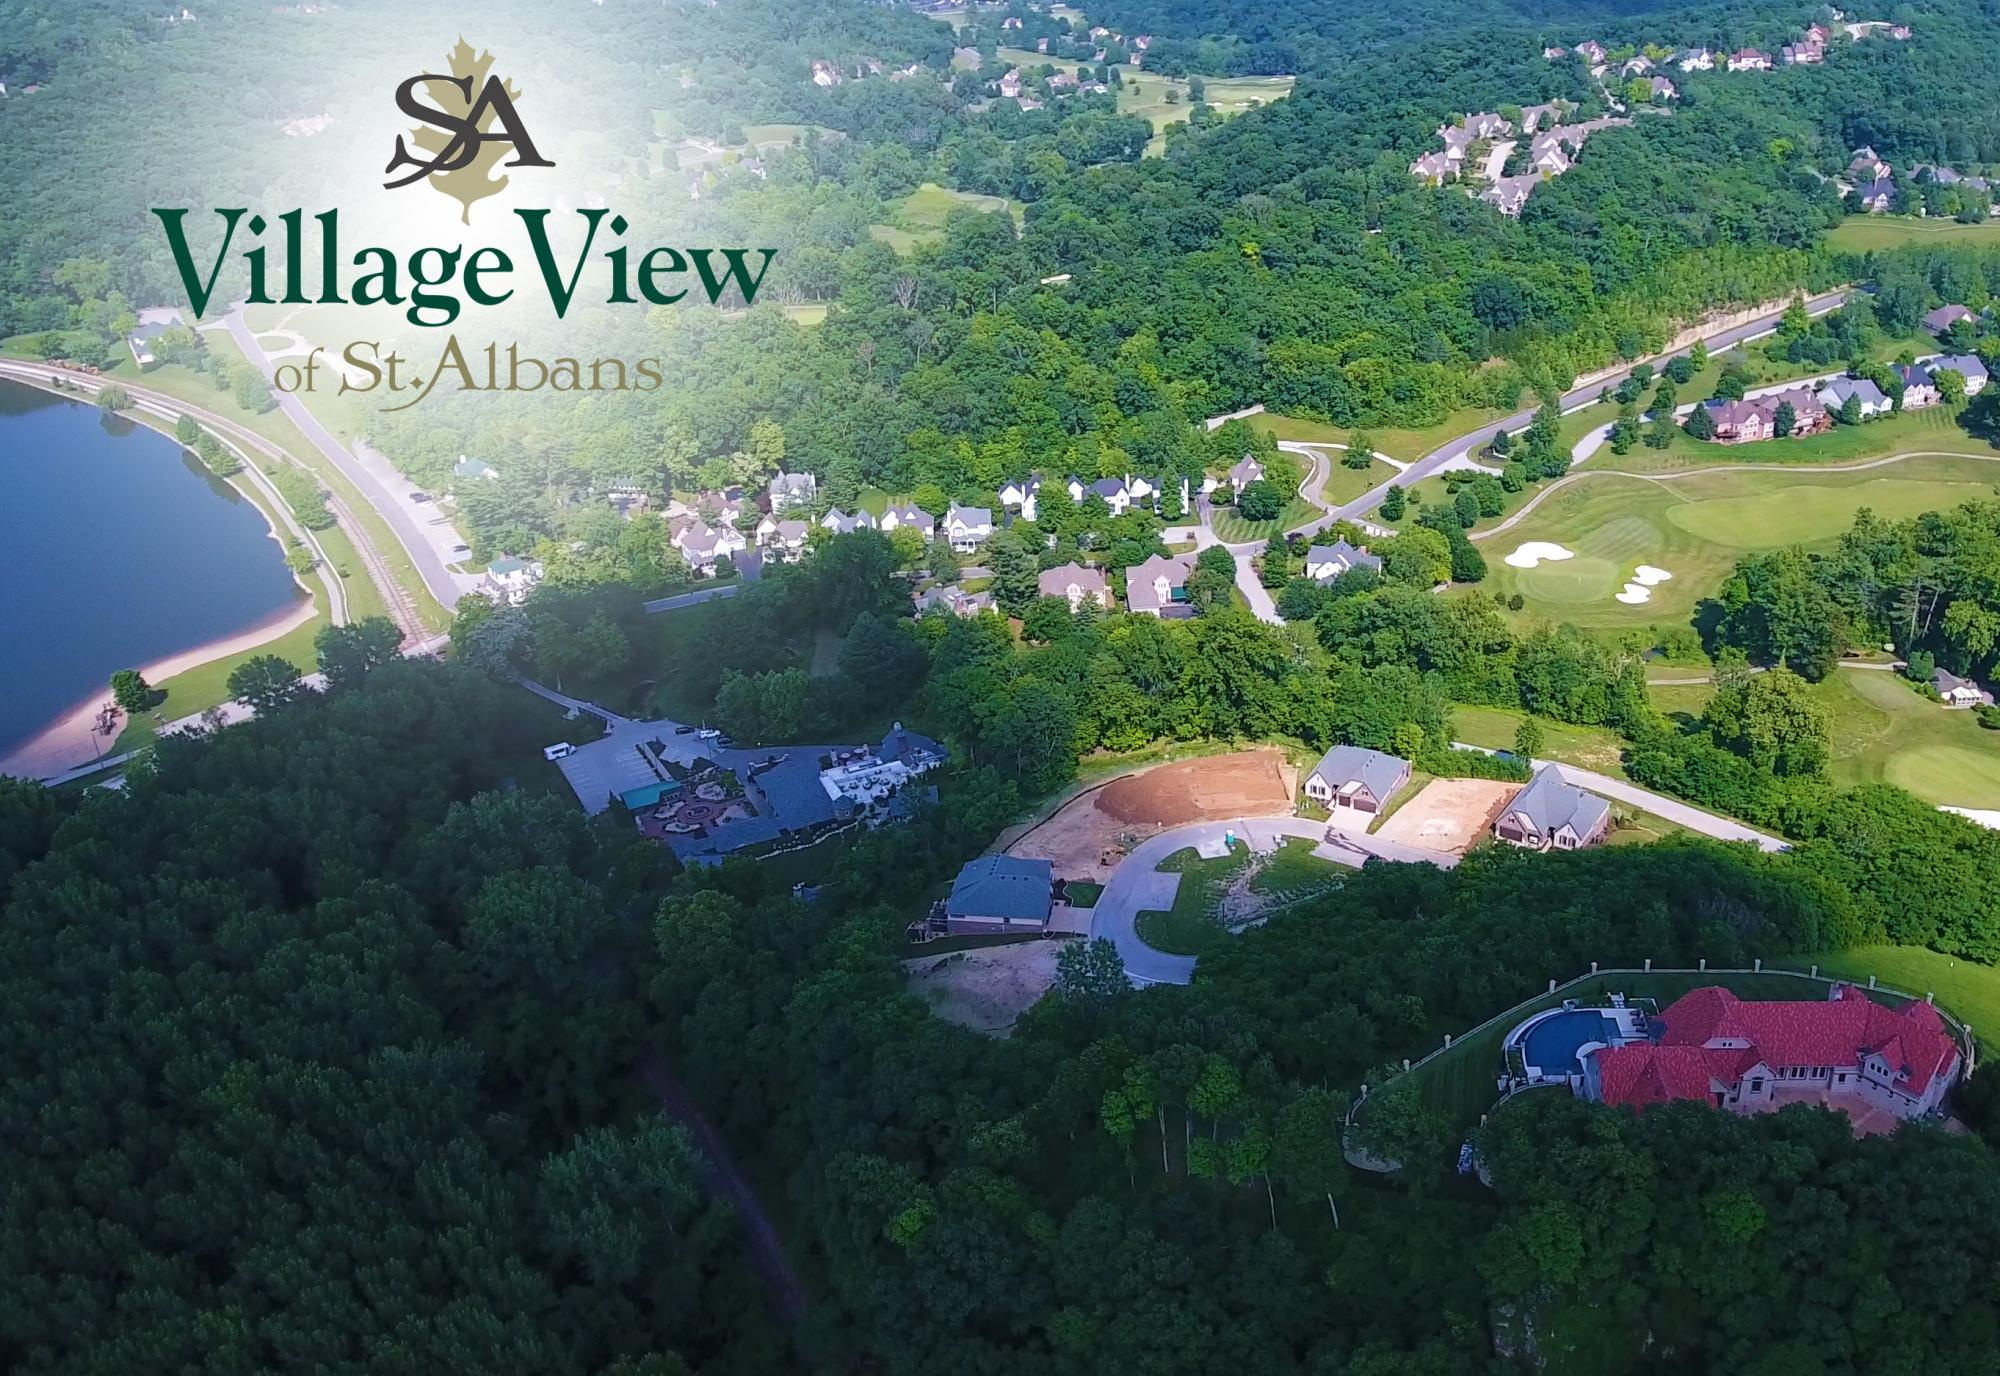 Single Family for Active at Campton - Luxury Villa 758 Village View Circle St. Albans, Missouri 63073 United States